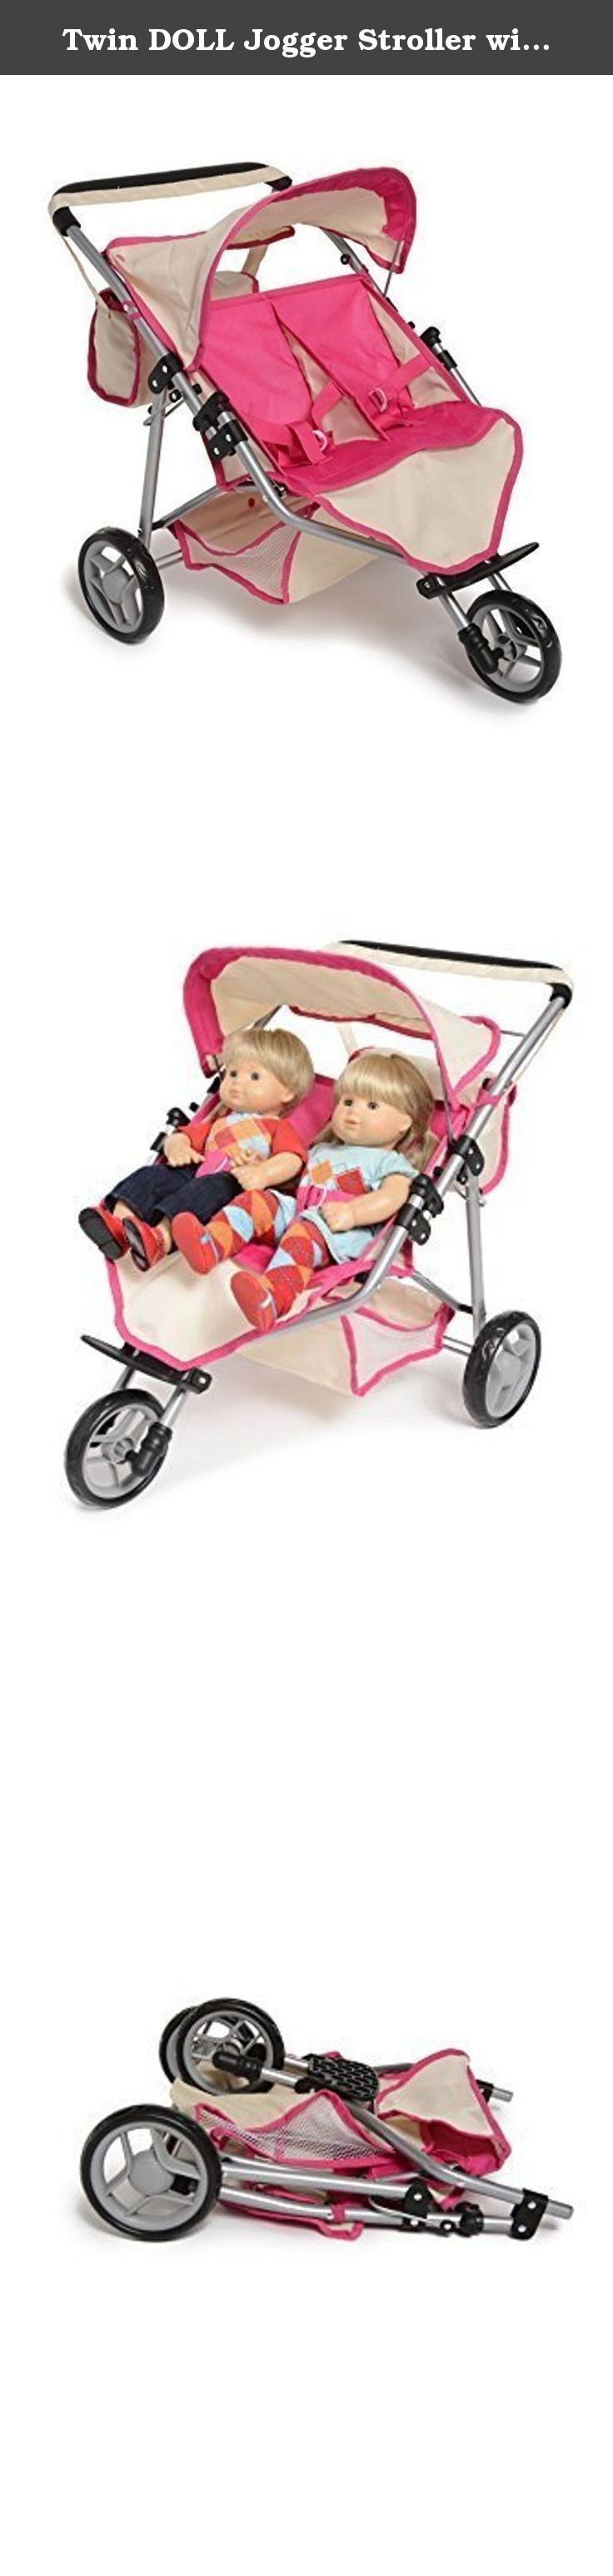 Twin DOLL Jogger Stroller with Diaper Bag, Off white/Pink